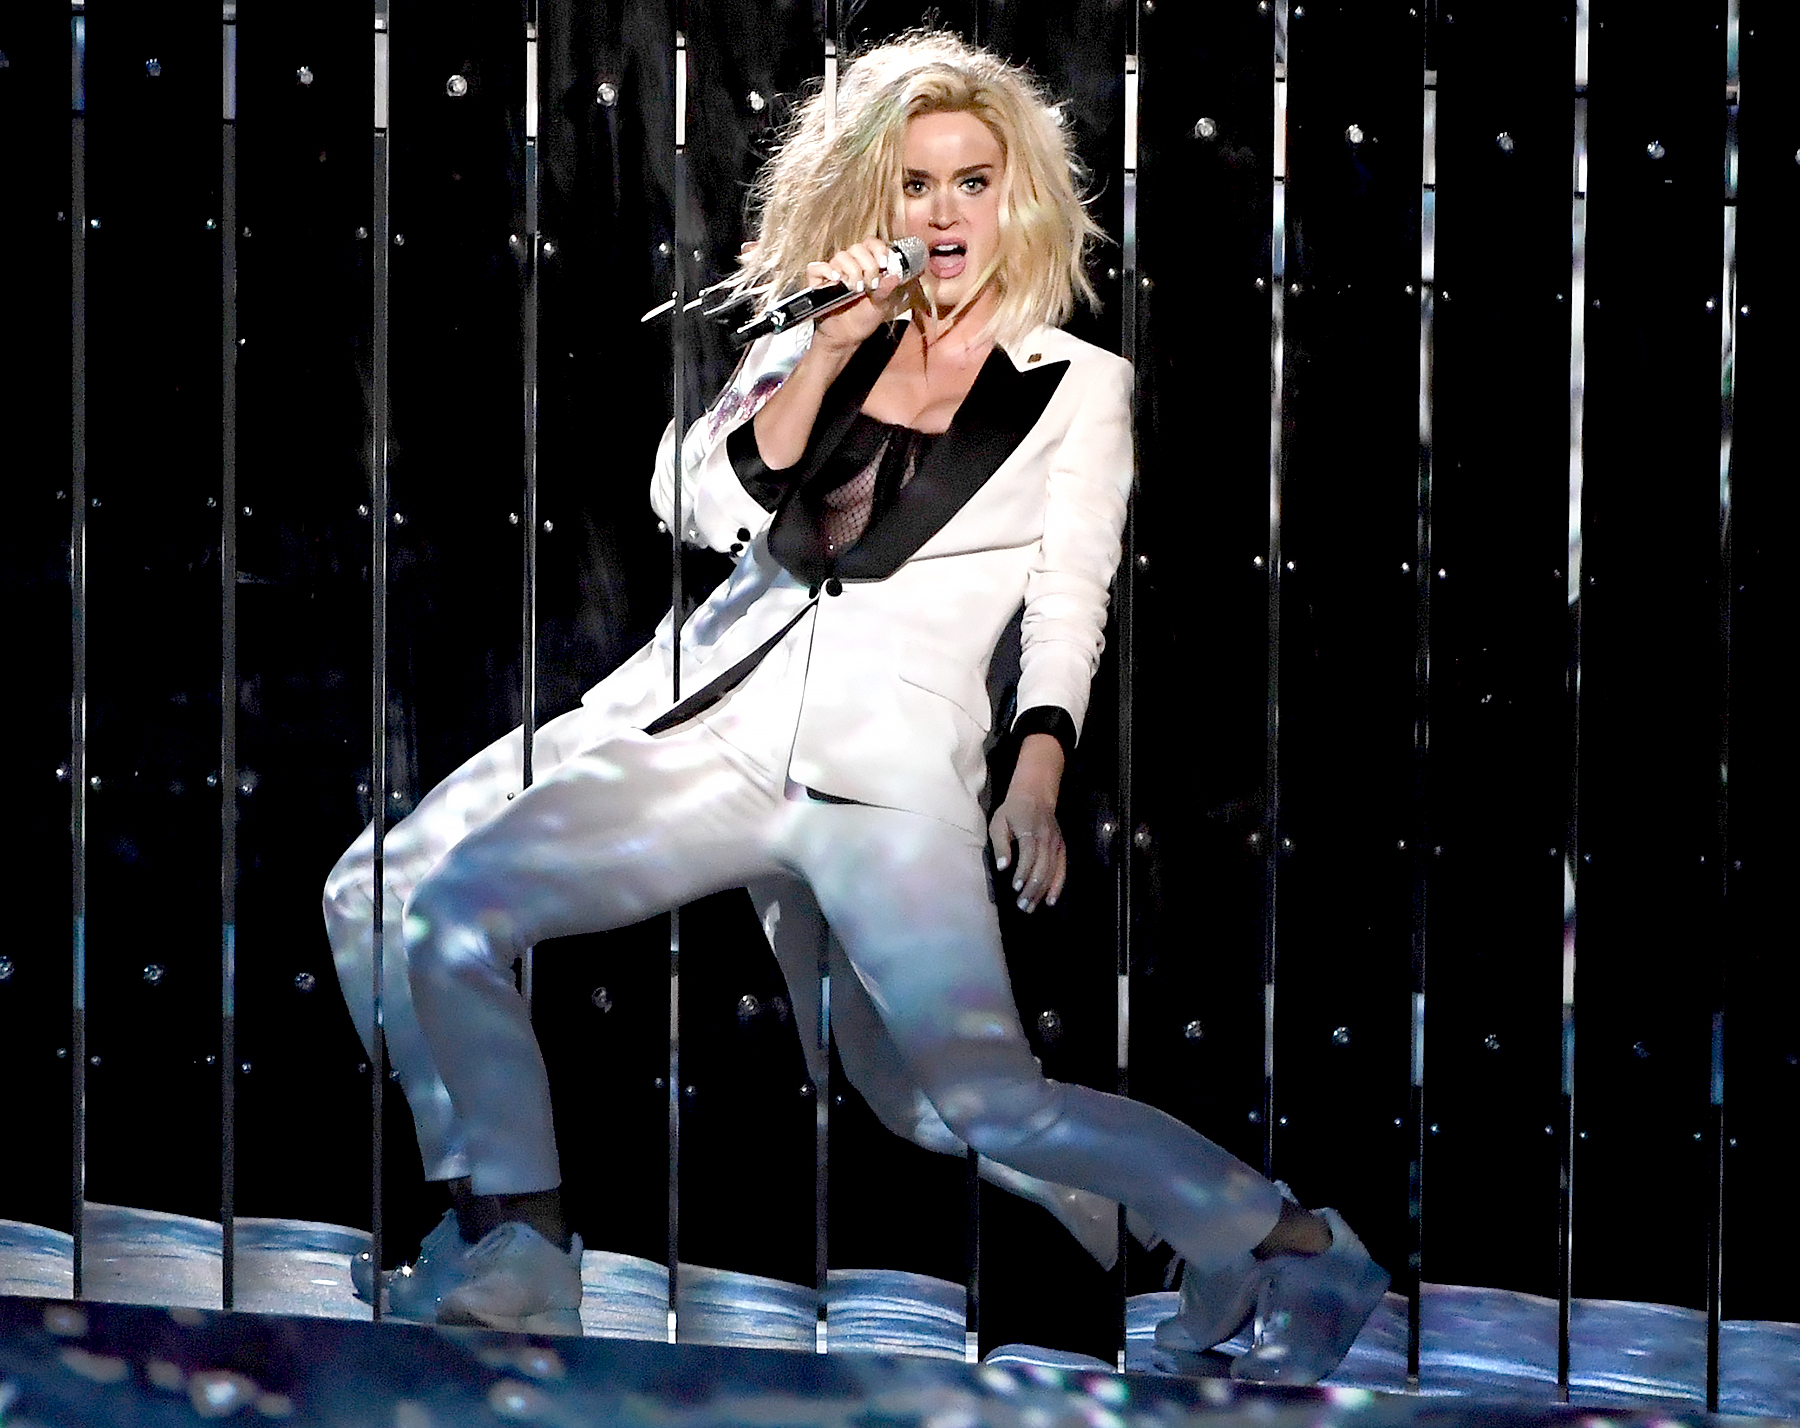 Grammys 2017: Katy Perry Performs 'Chained to the Rhythm'